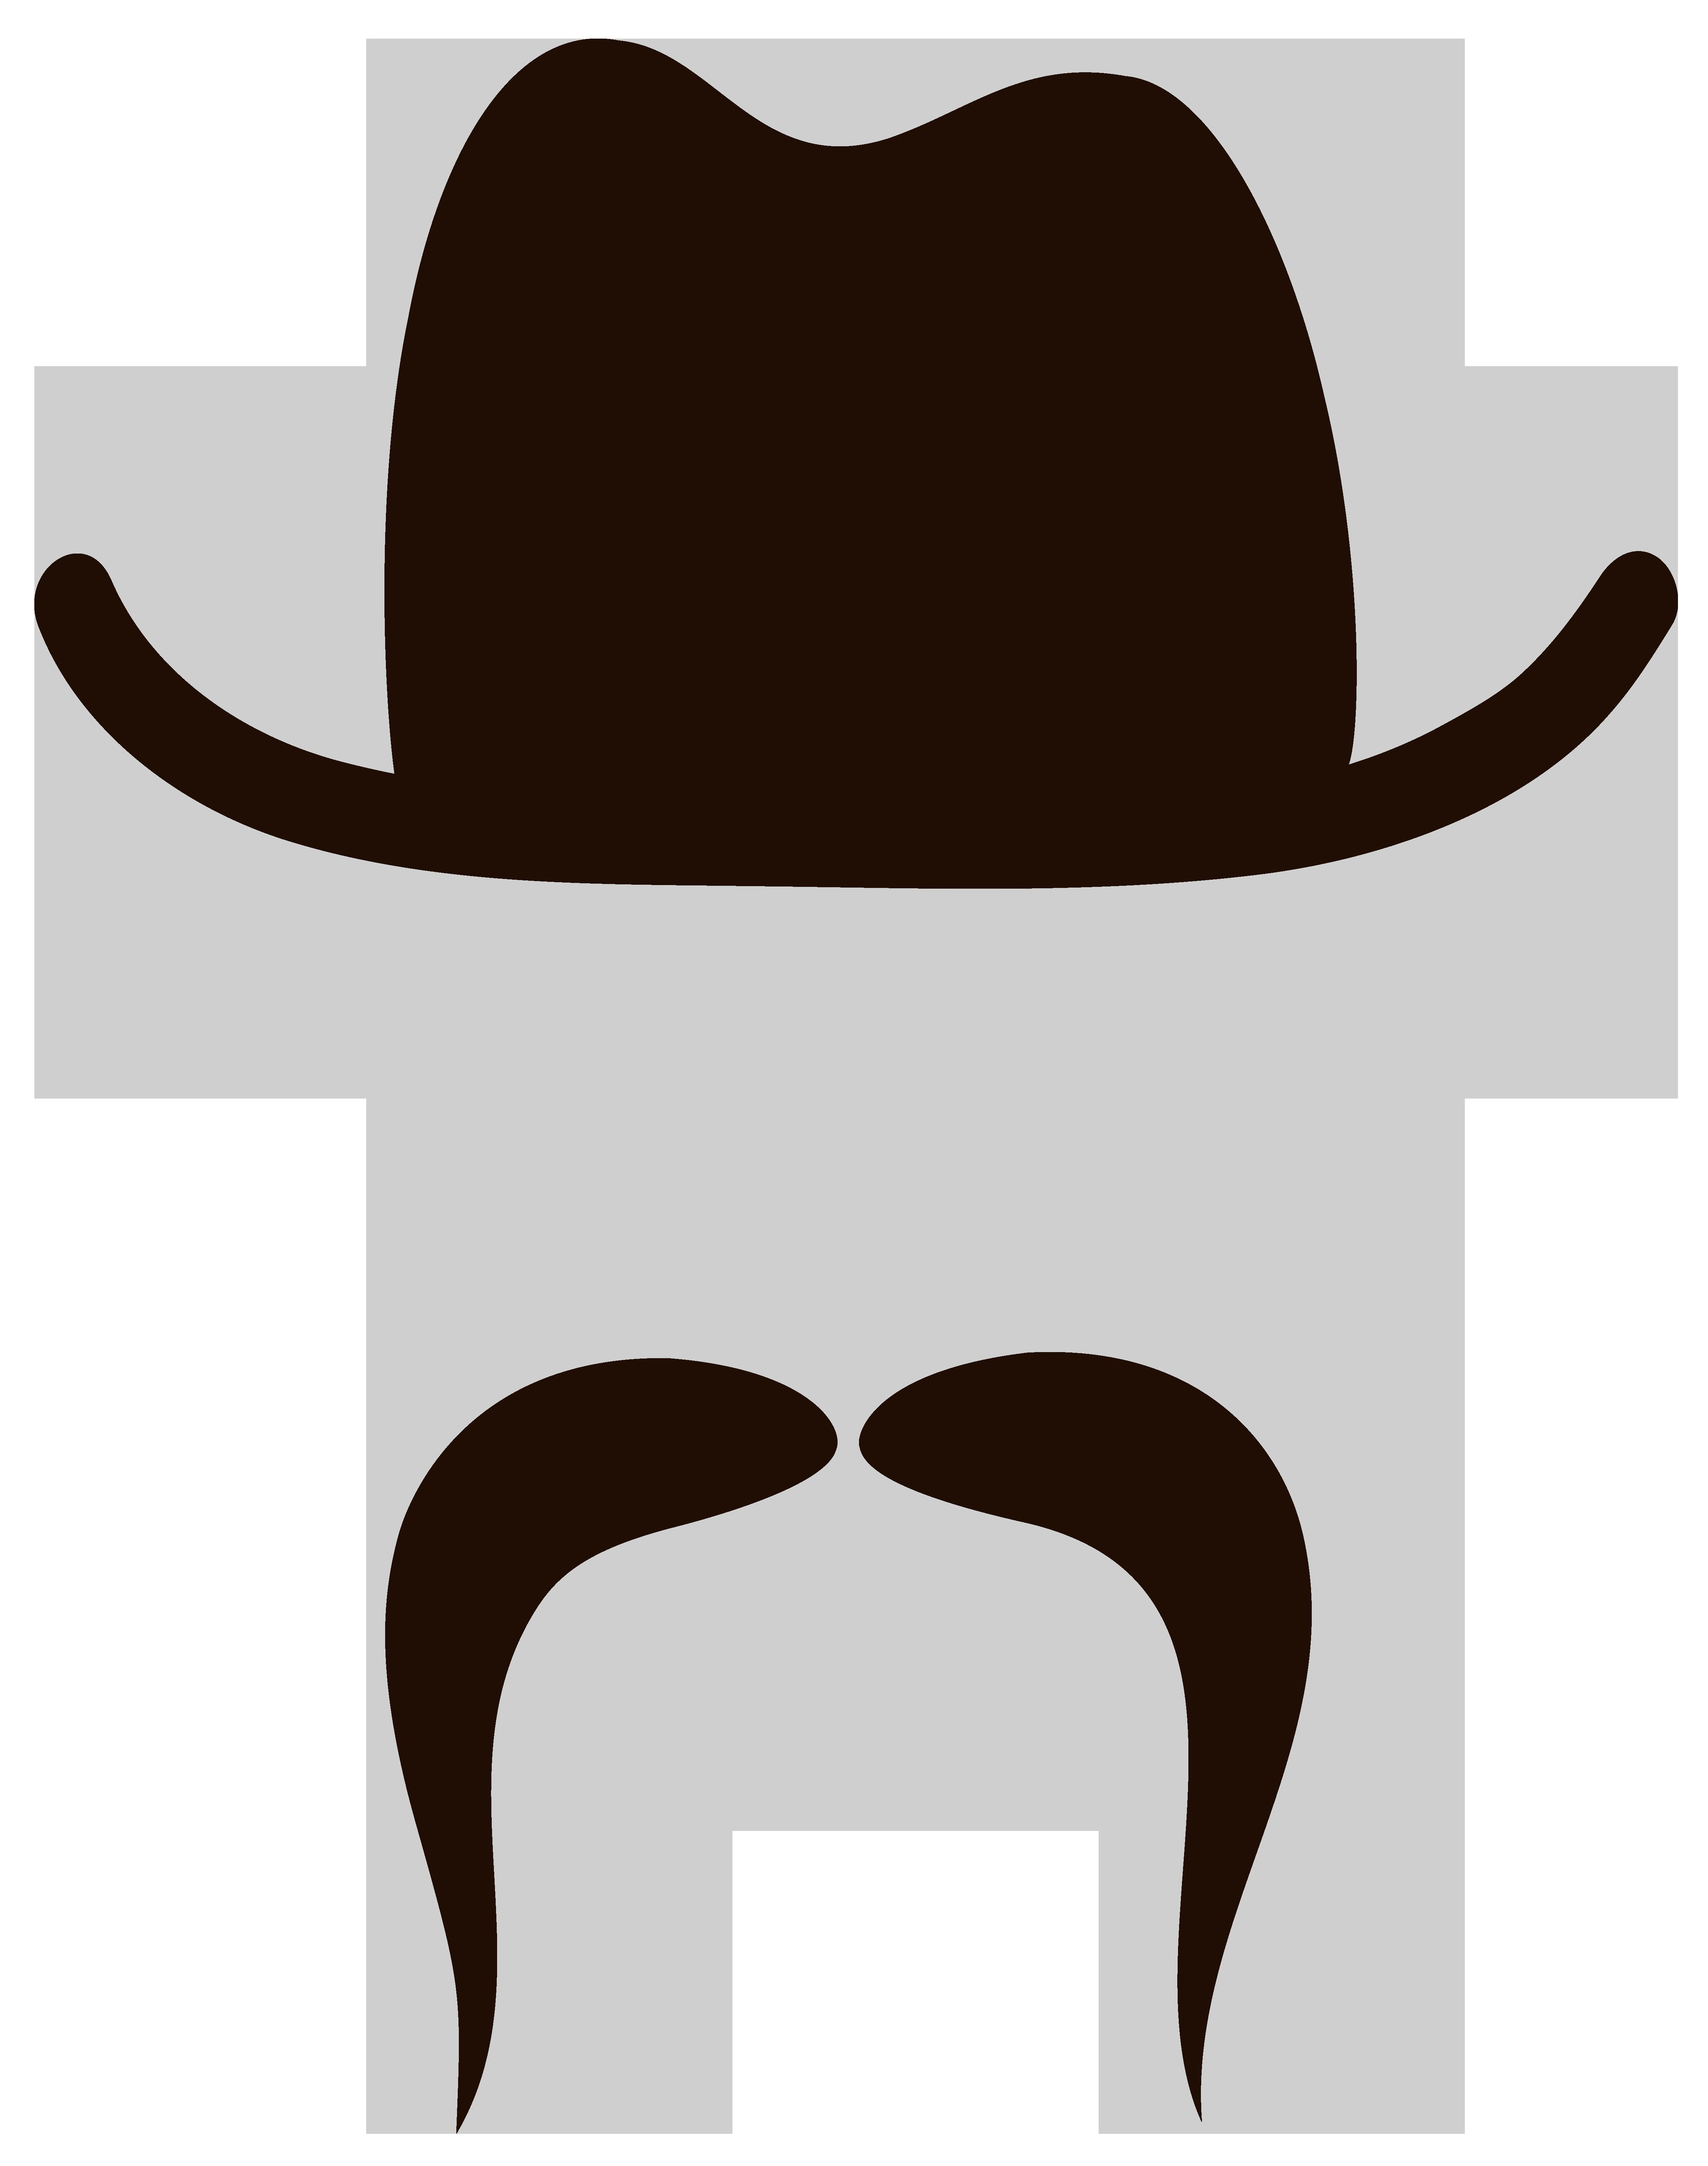 Western mustache clipart clip royalty free stock Western clipart mustache - 31 transparent clip arts, images ... clip royalty free stock